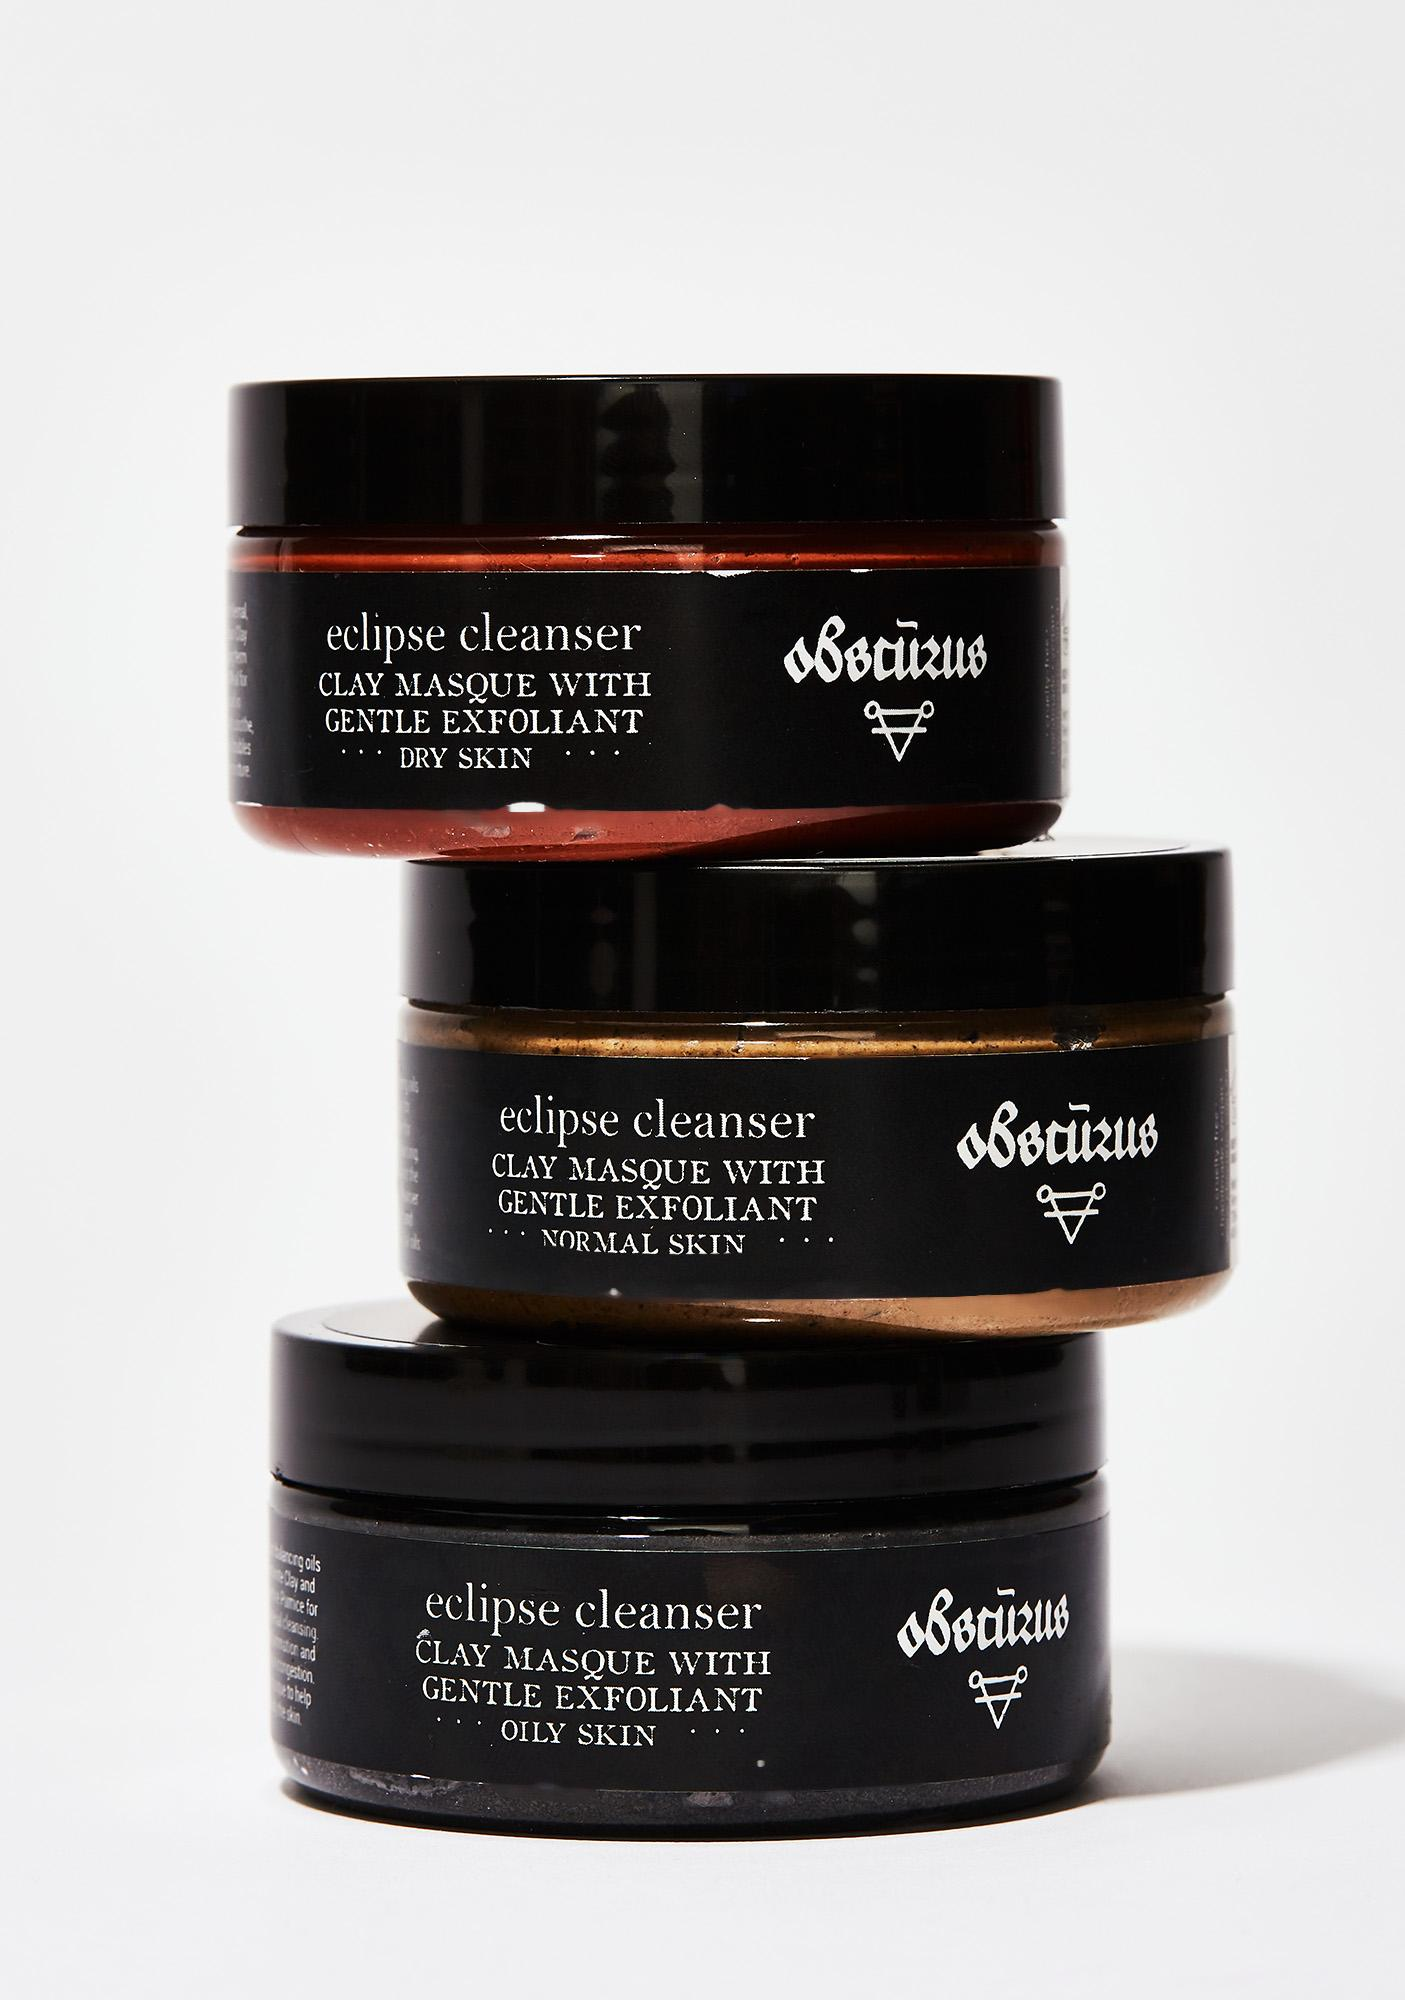 Obscurus Eclipse Cleanser & Clay Masque- Normal Skin